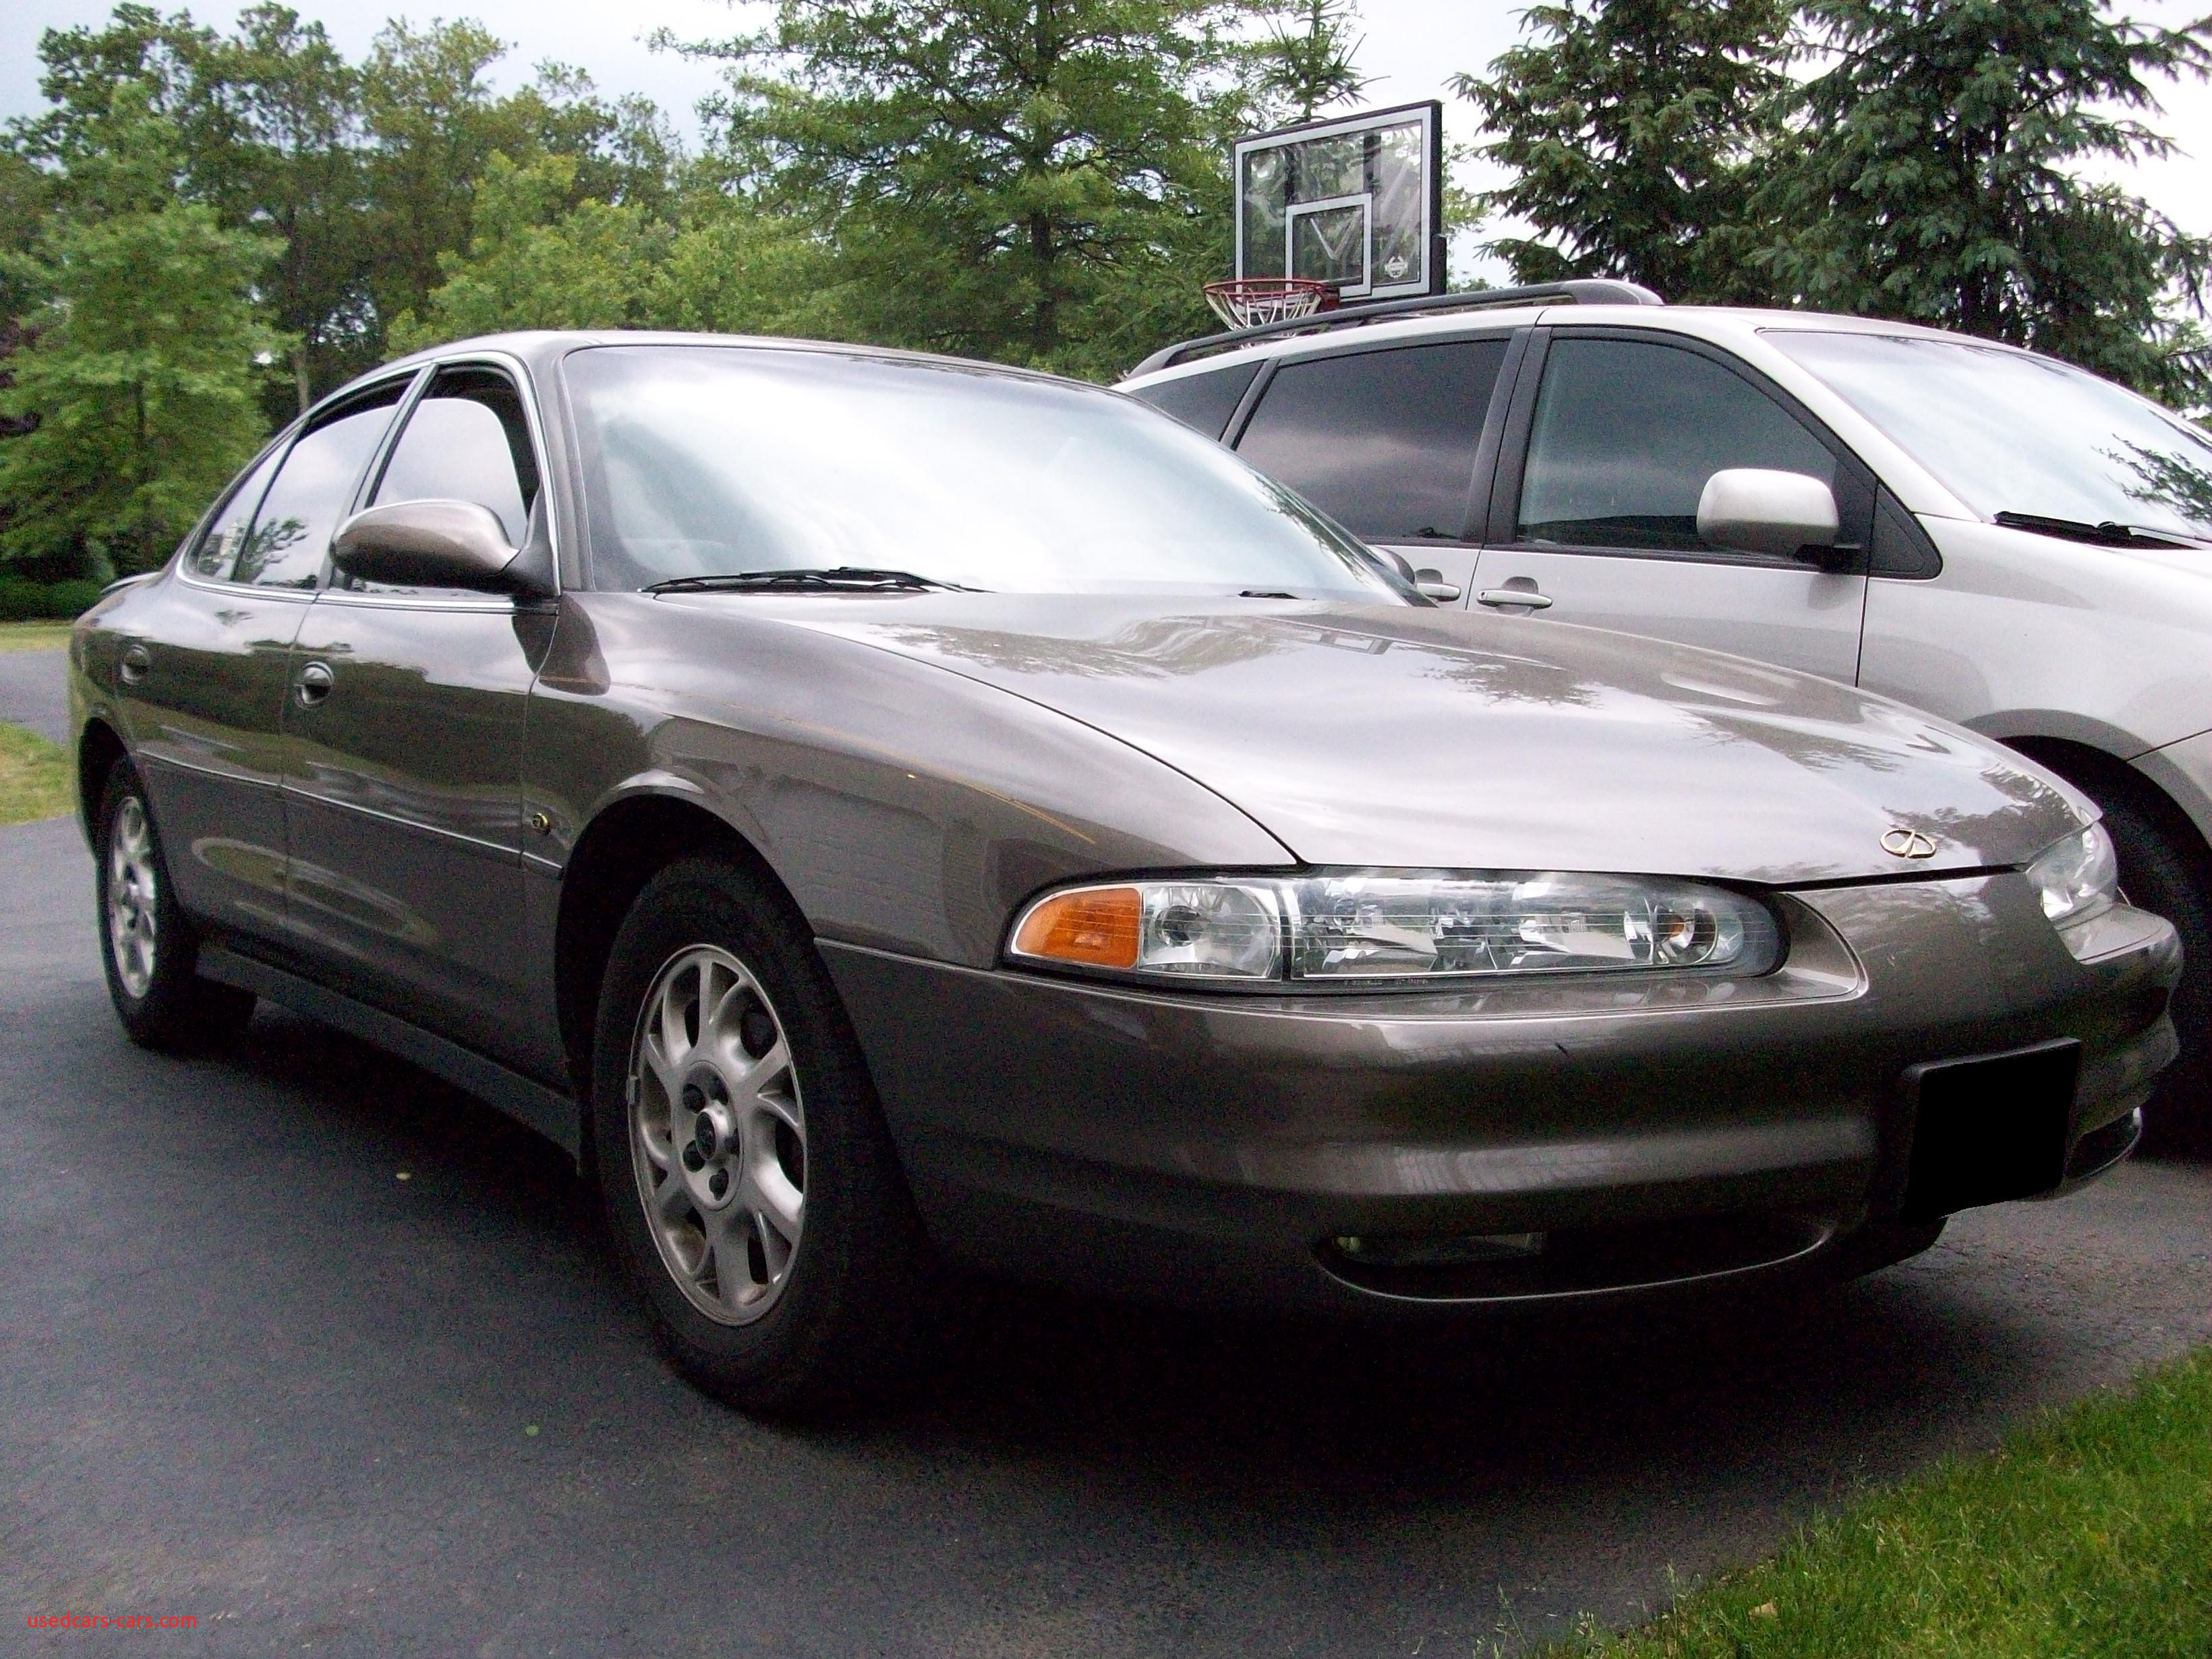 2000 Oldsmobile Intrigue Luxury Wmc84xxl 2000 Oldsmobile Intrigue Specs Photos